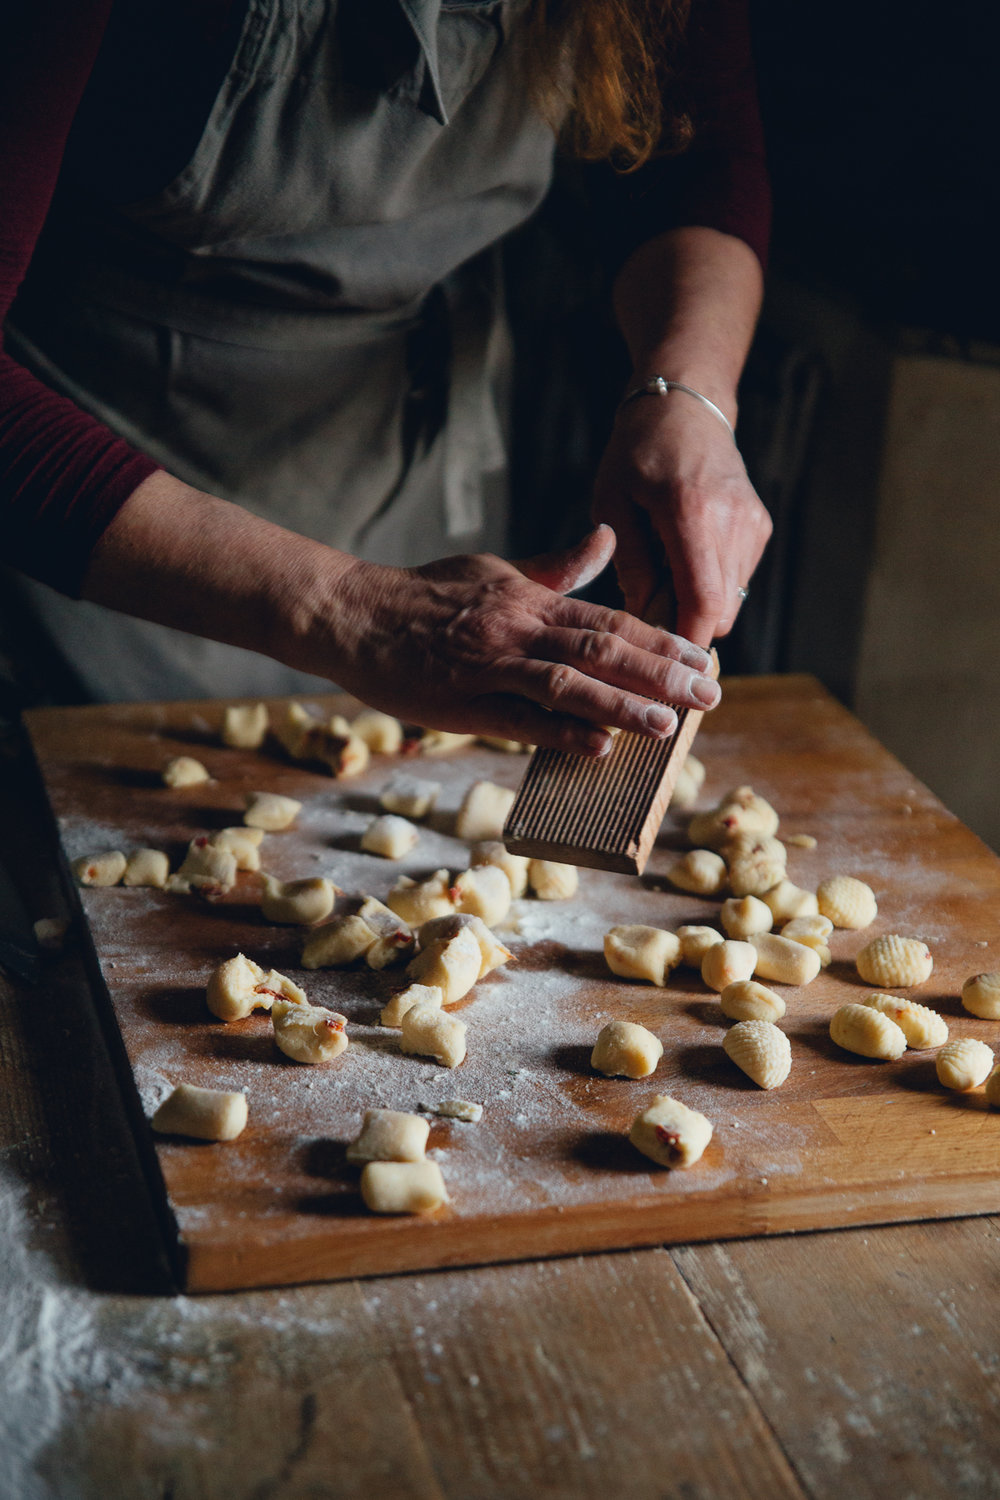 Gnocchi In The Making at La Quercia Estate, Italy, February 2017